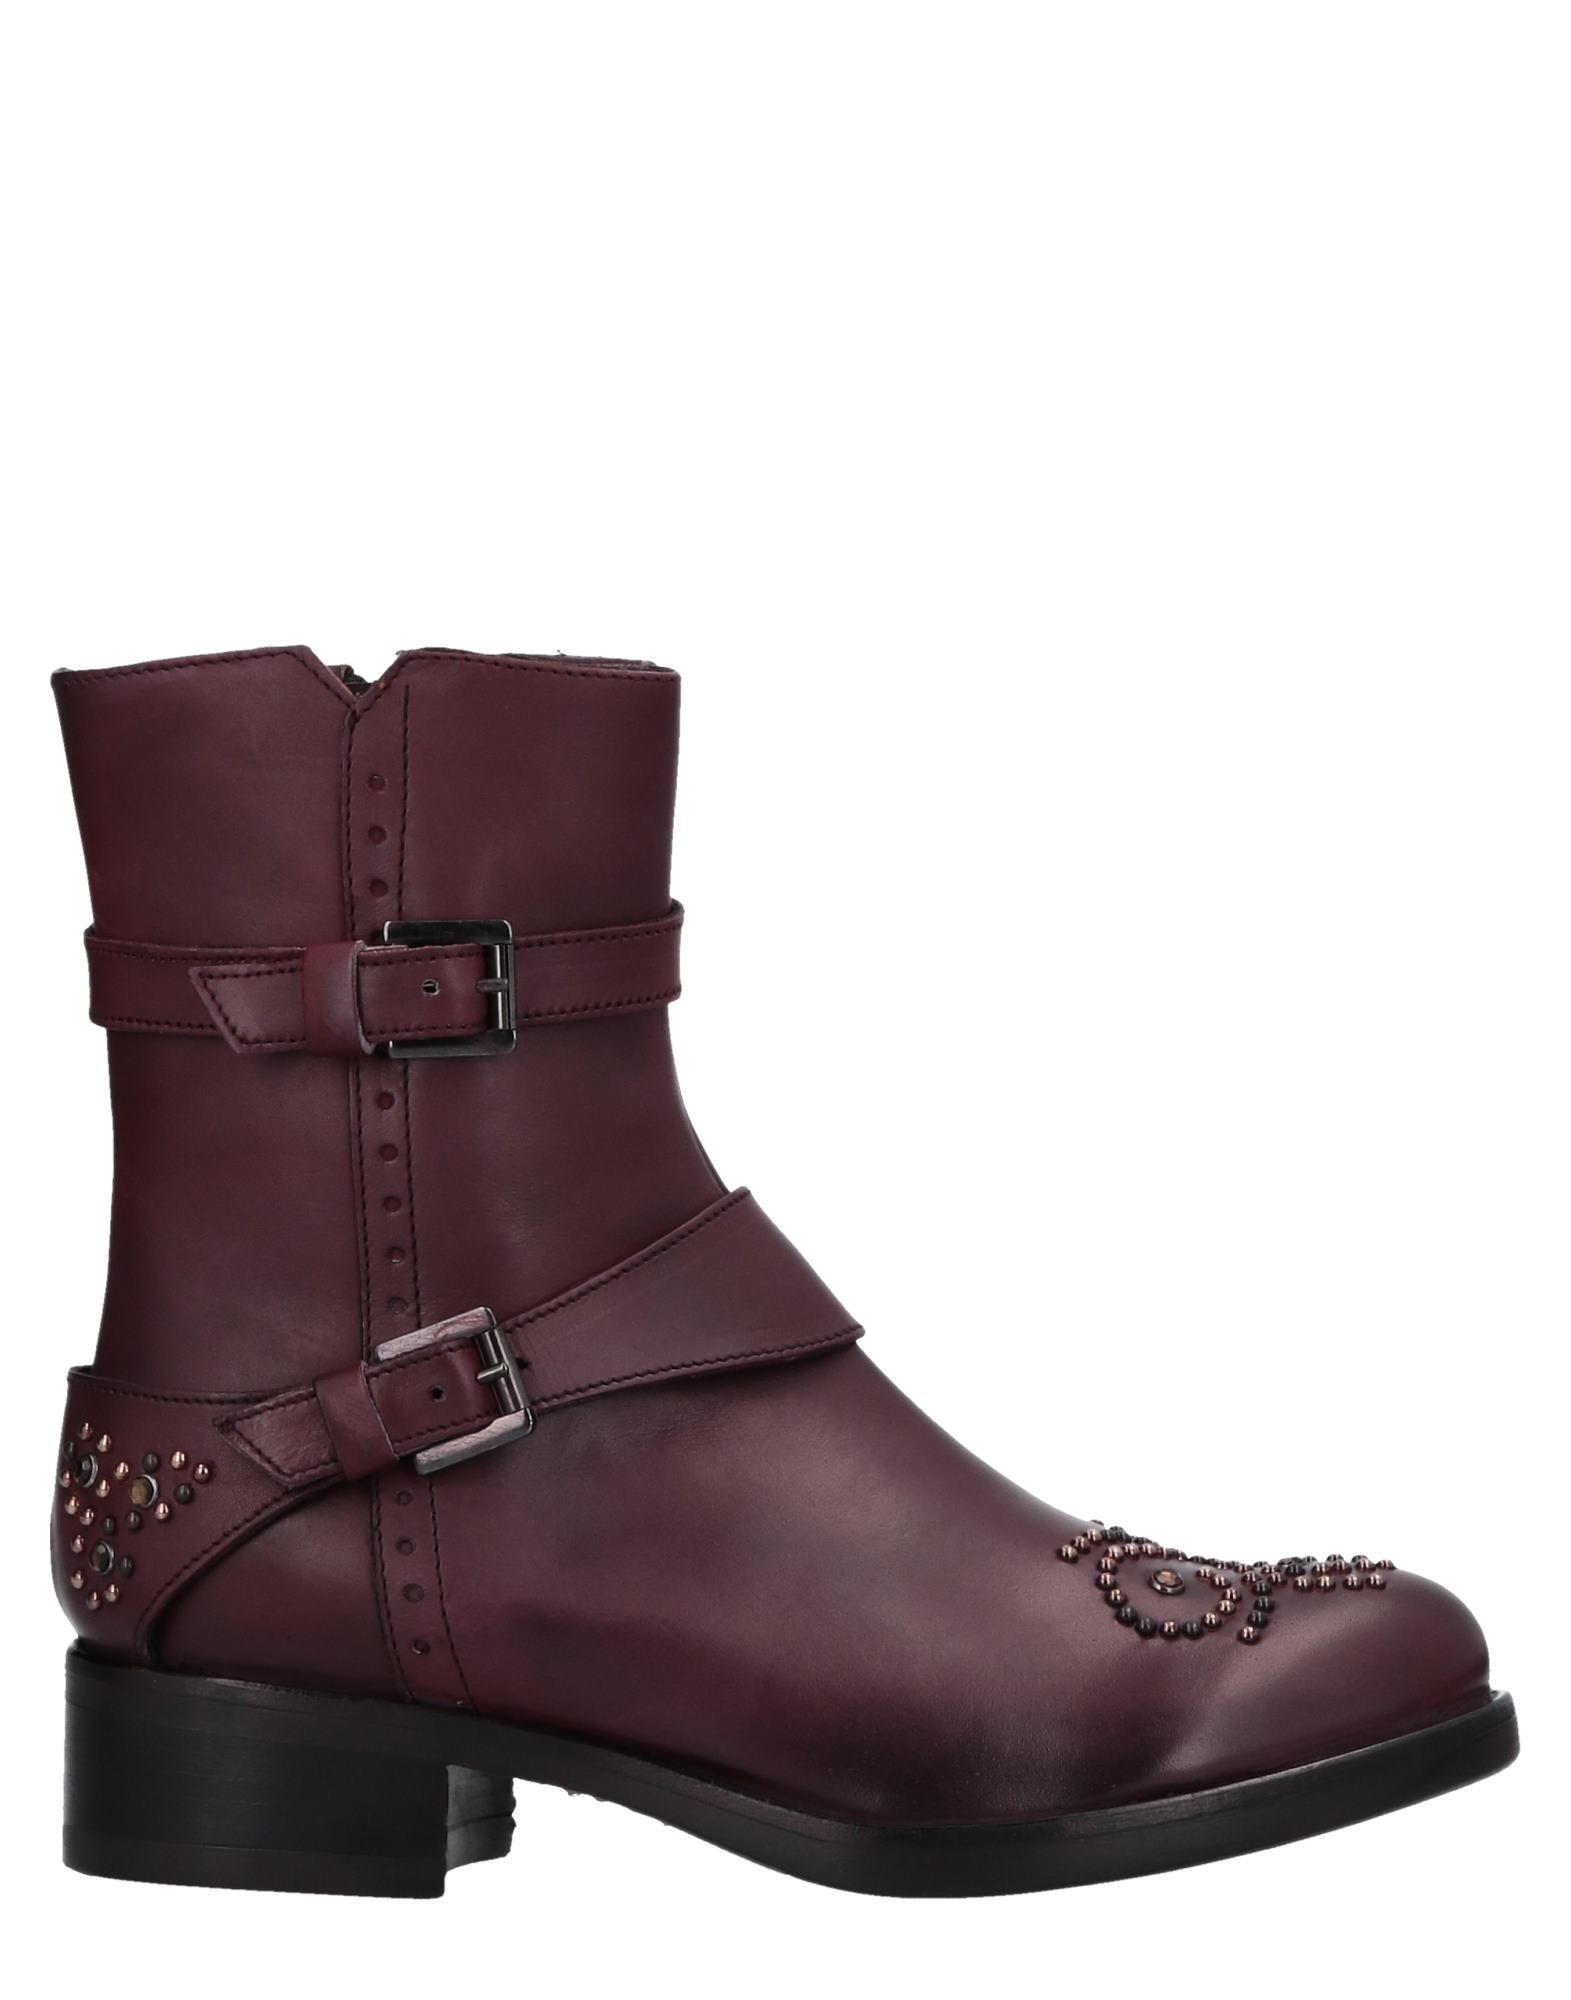 MANAS Ankle Boot in Mauve